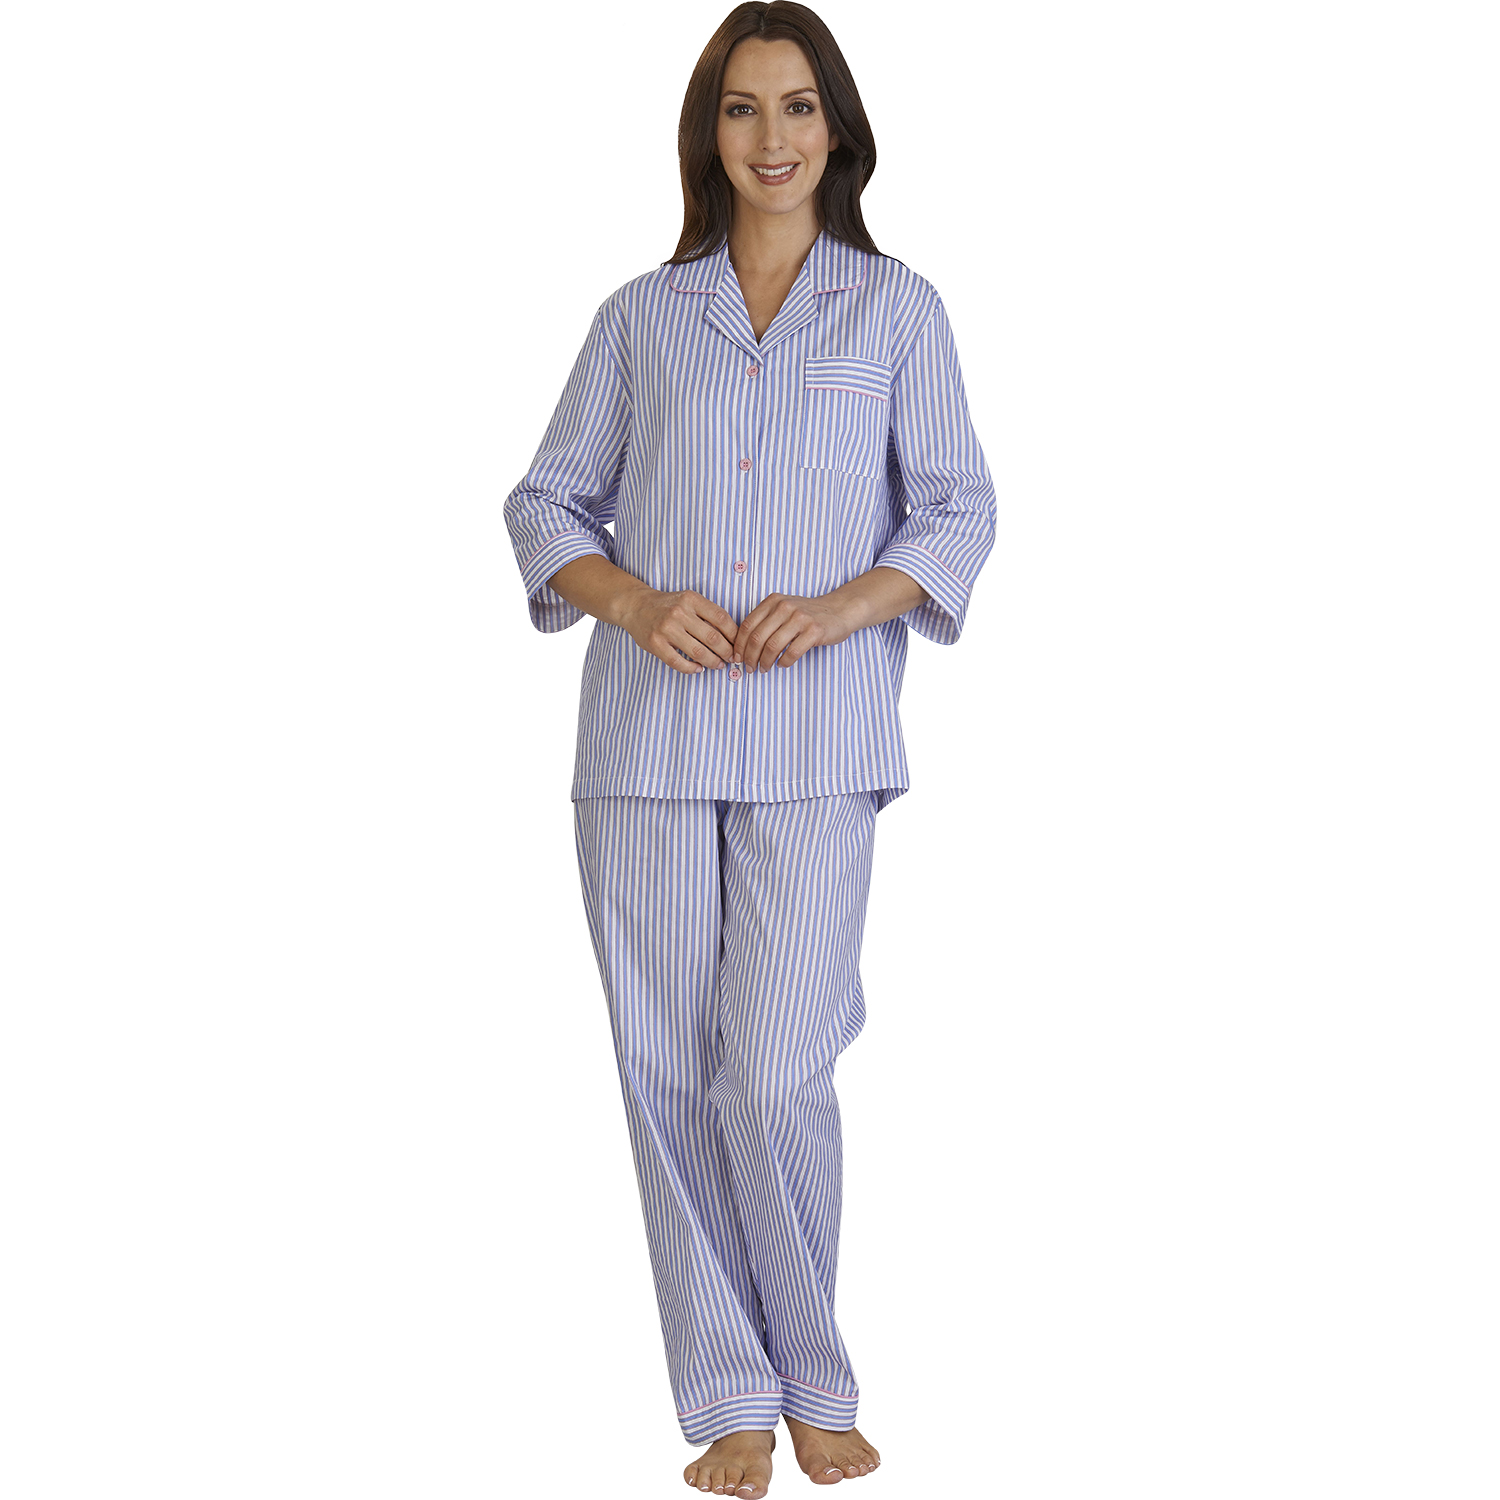 Ekouaer Womens Cotton Pjs Short Sleeve Round Neck Pajama Set Sleepwear. by Ekouaer. $ - $ $ 16 $ 27 59 Prime. FREE Shipping on eligible orders. Some sizes/colors are Prime eligible. out of 5 stars